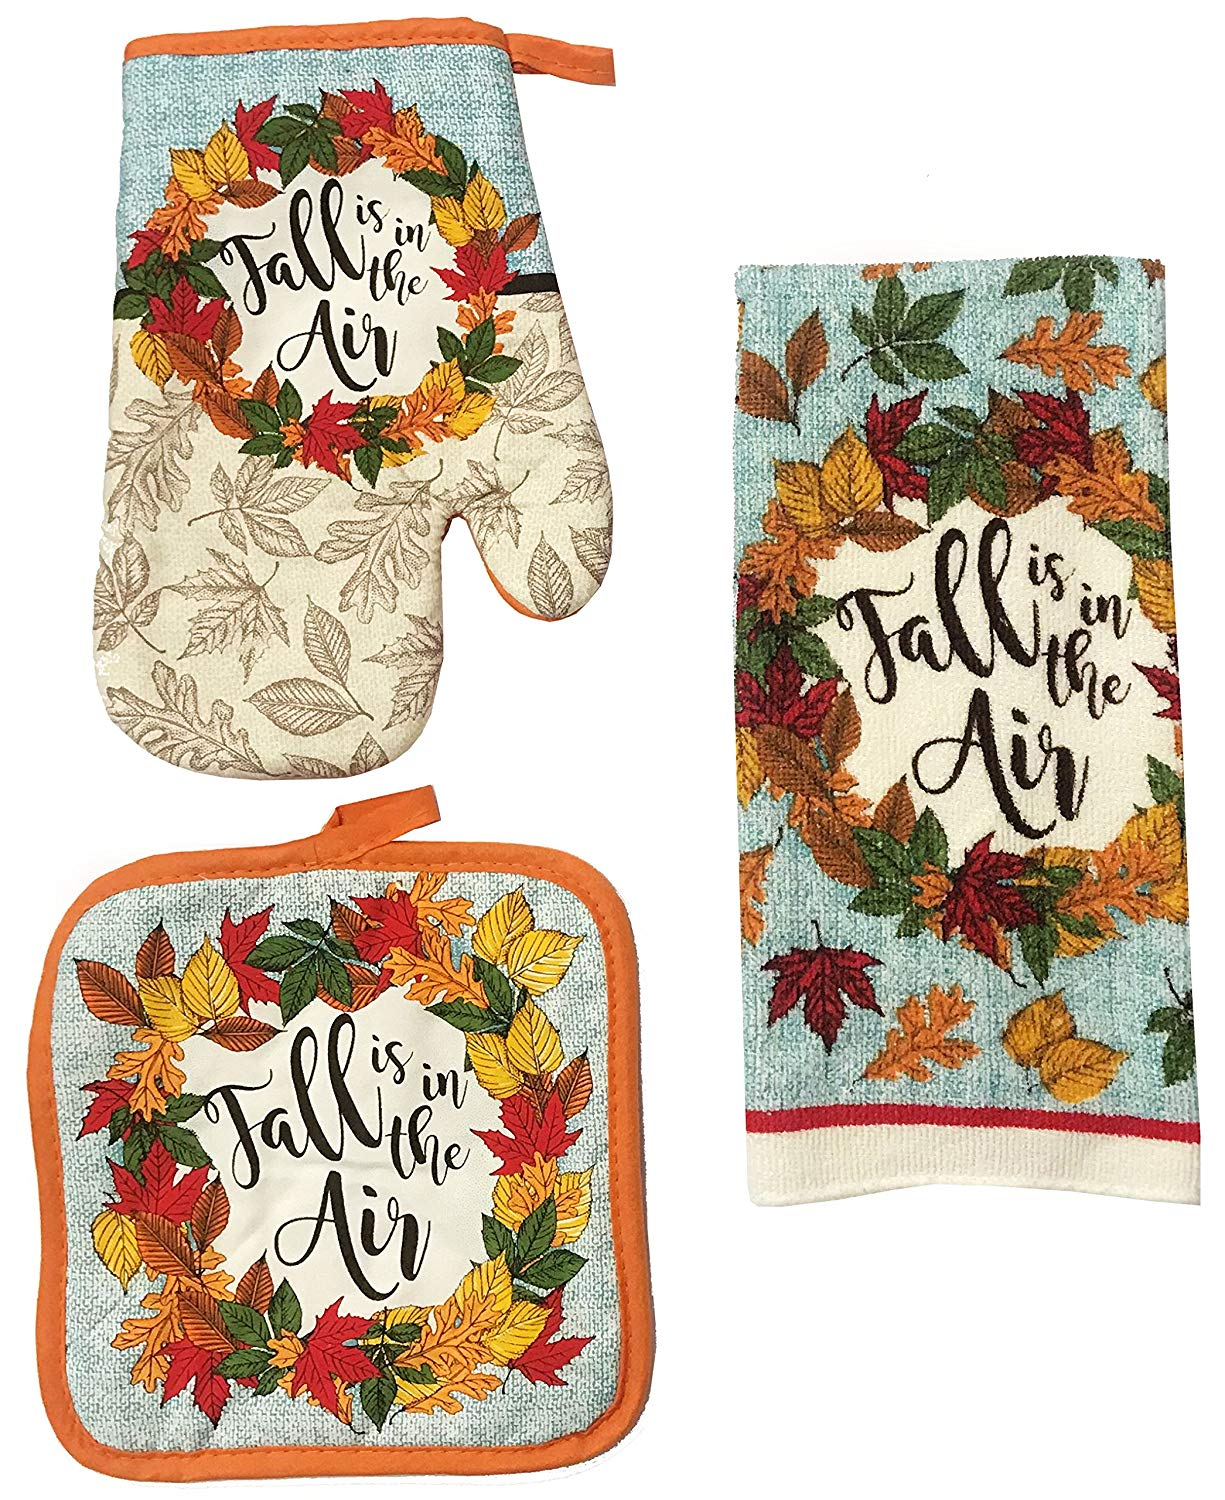 Kitchen Towel Set 3 Piece Fall Autumn Thanksgiving Harvest Theme Design That Includes 1 Dish Towels, 1 Pot Holder, and 1 Oven Mitt (Fall is in the Air)